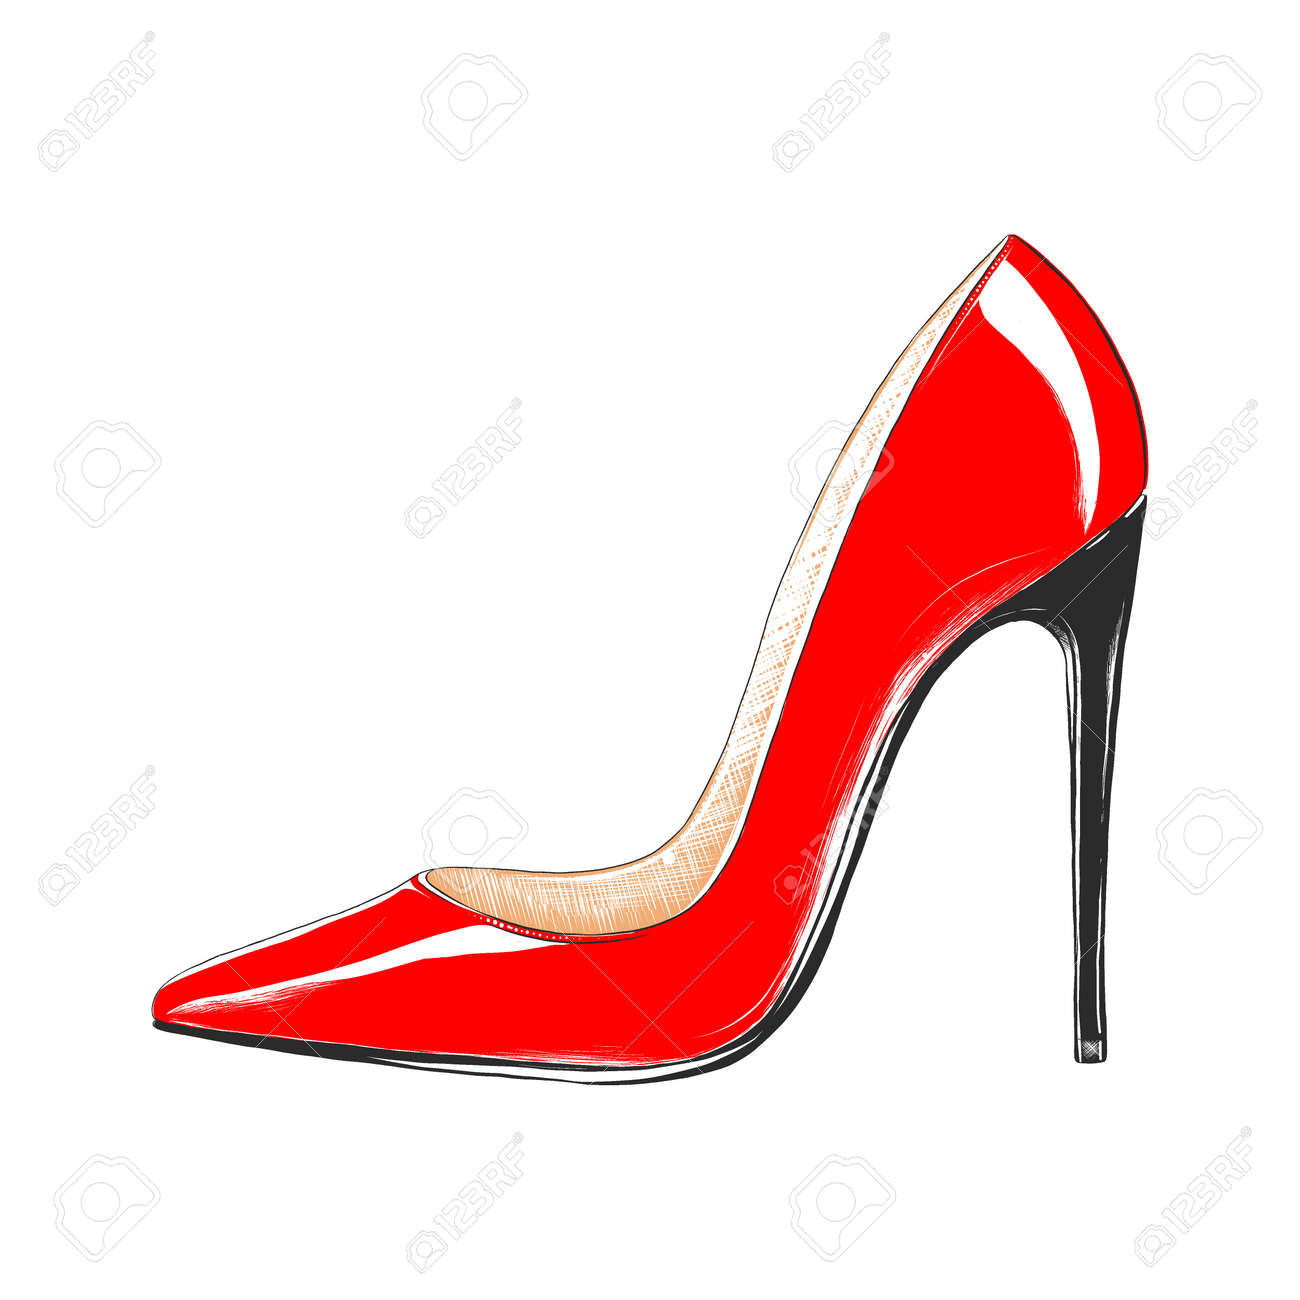 Vector engraved style illustration for posters, decoration and print. Hand drawn sketch of women's high heel shoe in colorful isolated on white background. Detailed vintage woodcut style drawing. - 156222192